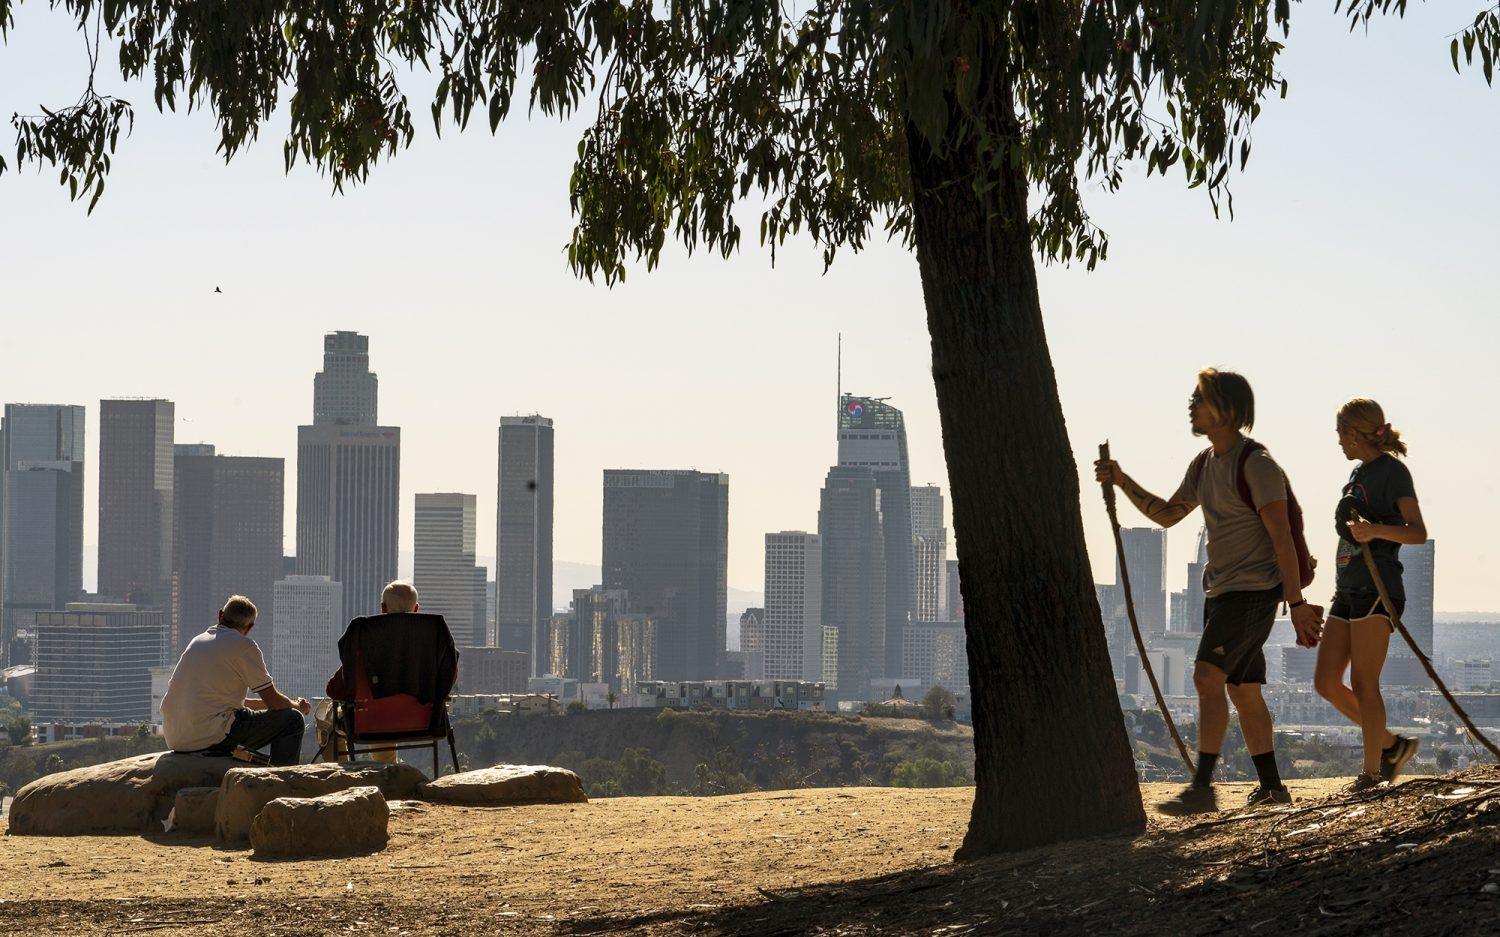 California sees first year-over-year population decline